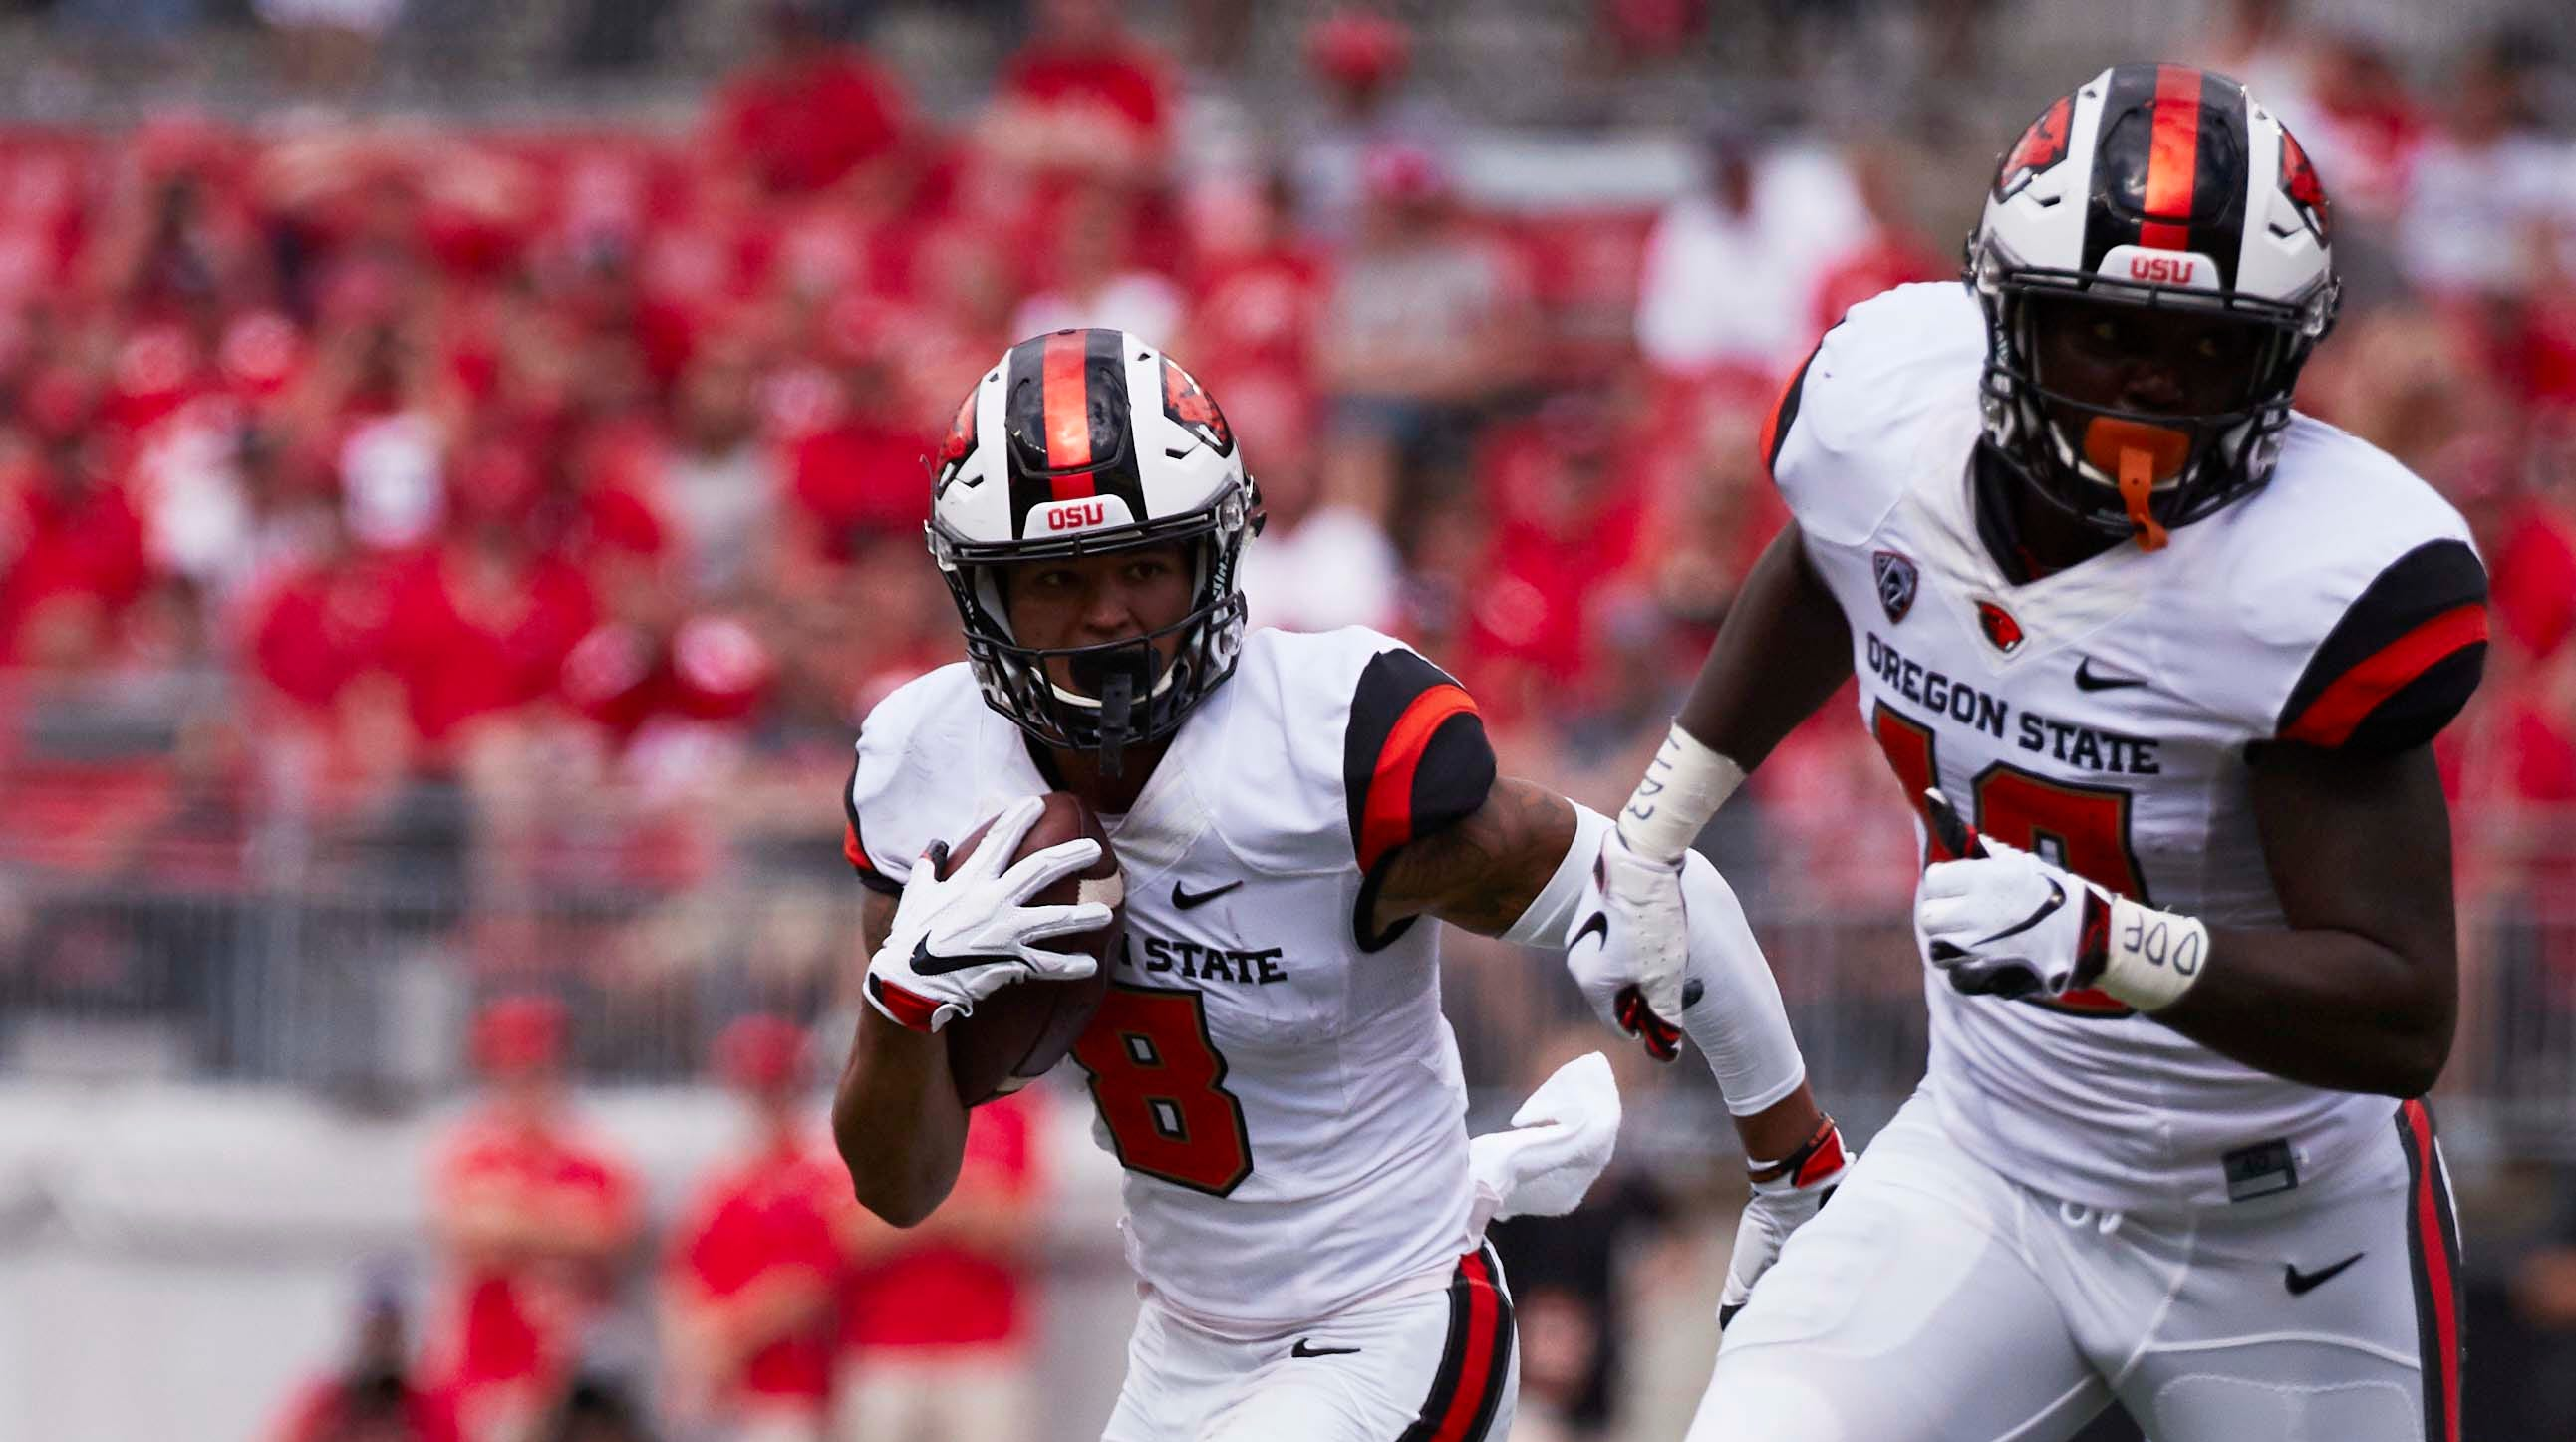 Nevada-Oregon State: Position preview and prediction